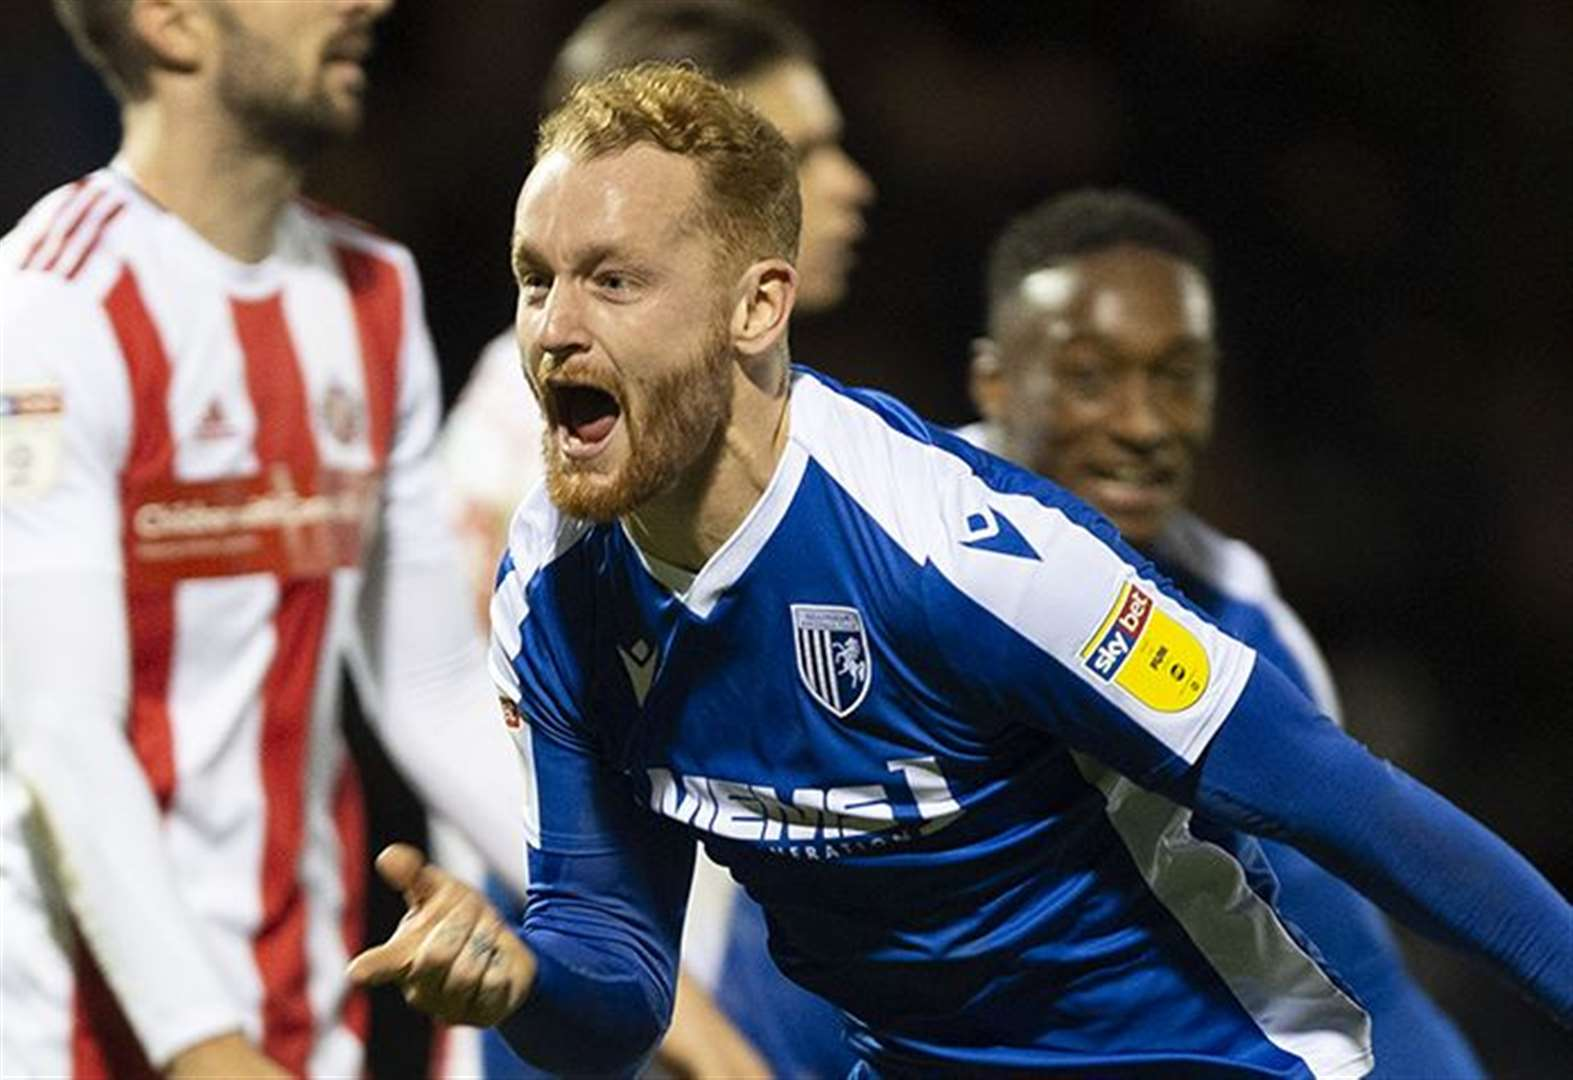 Report: Ogilvie the hero for Gills